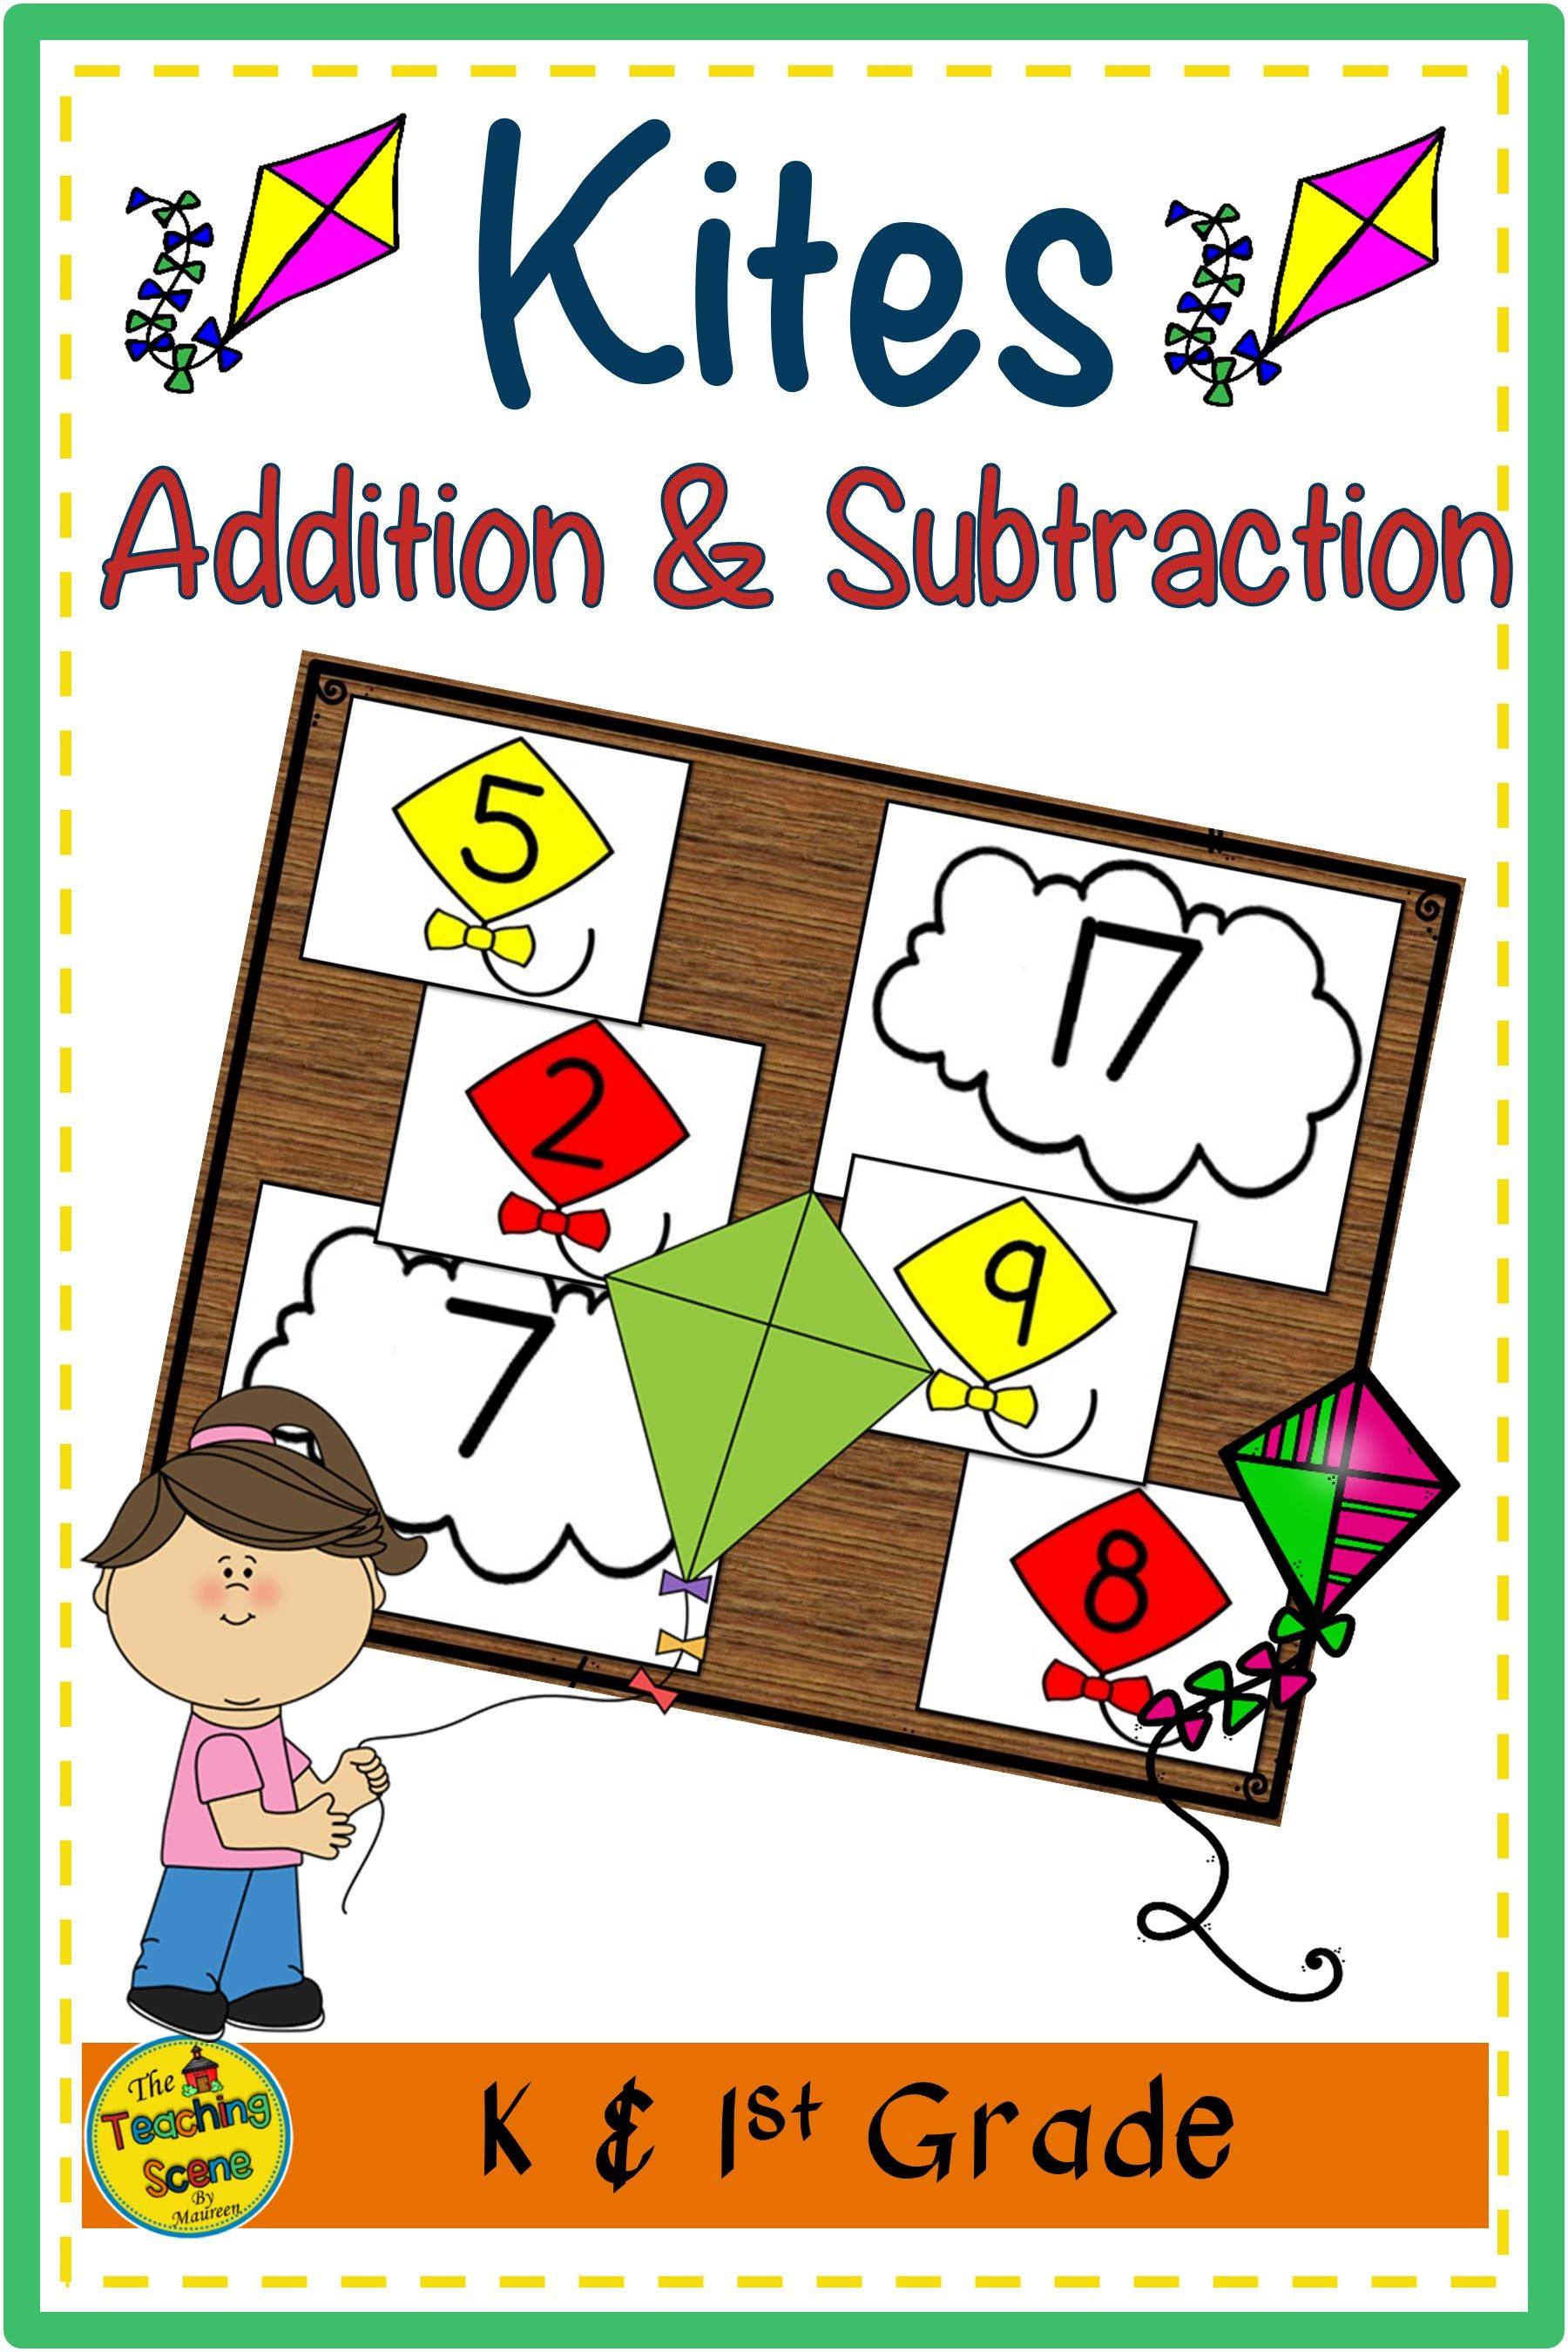 Kites Build 2 Addend 0 20 Addition Amp Subtraction Number